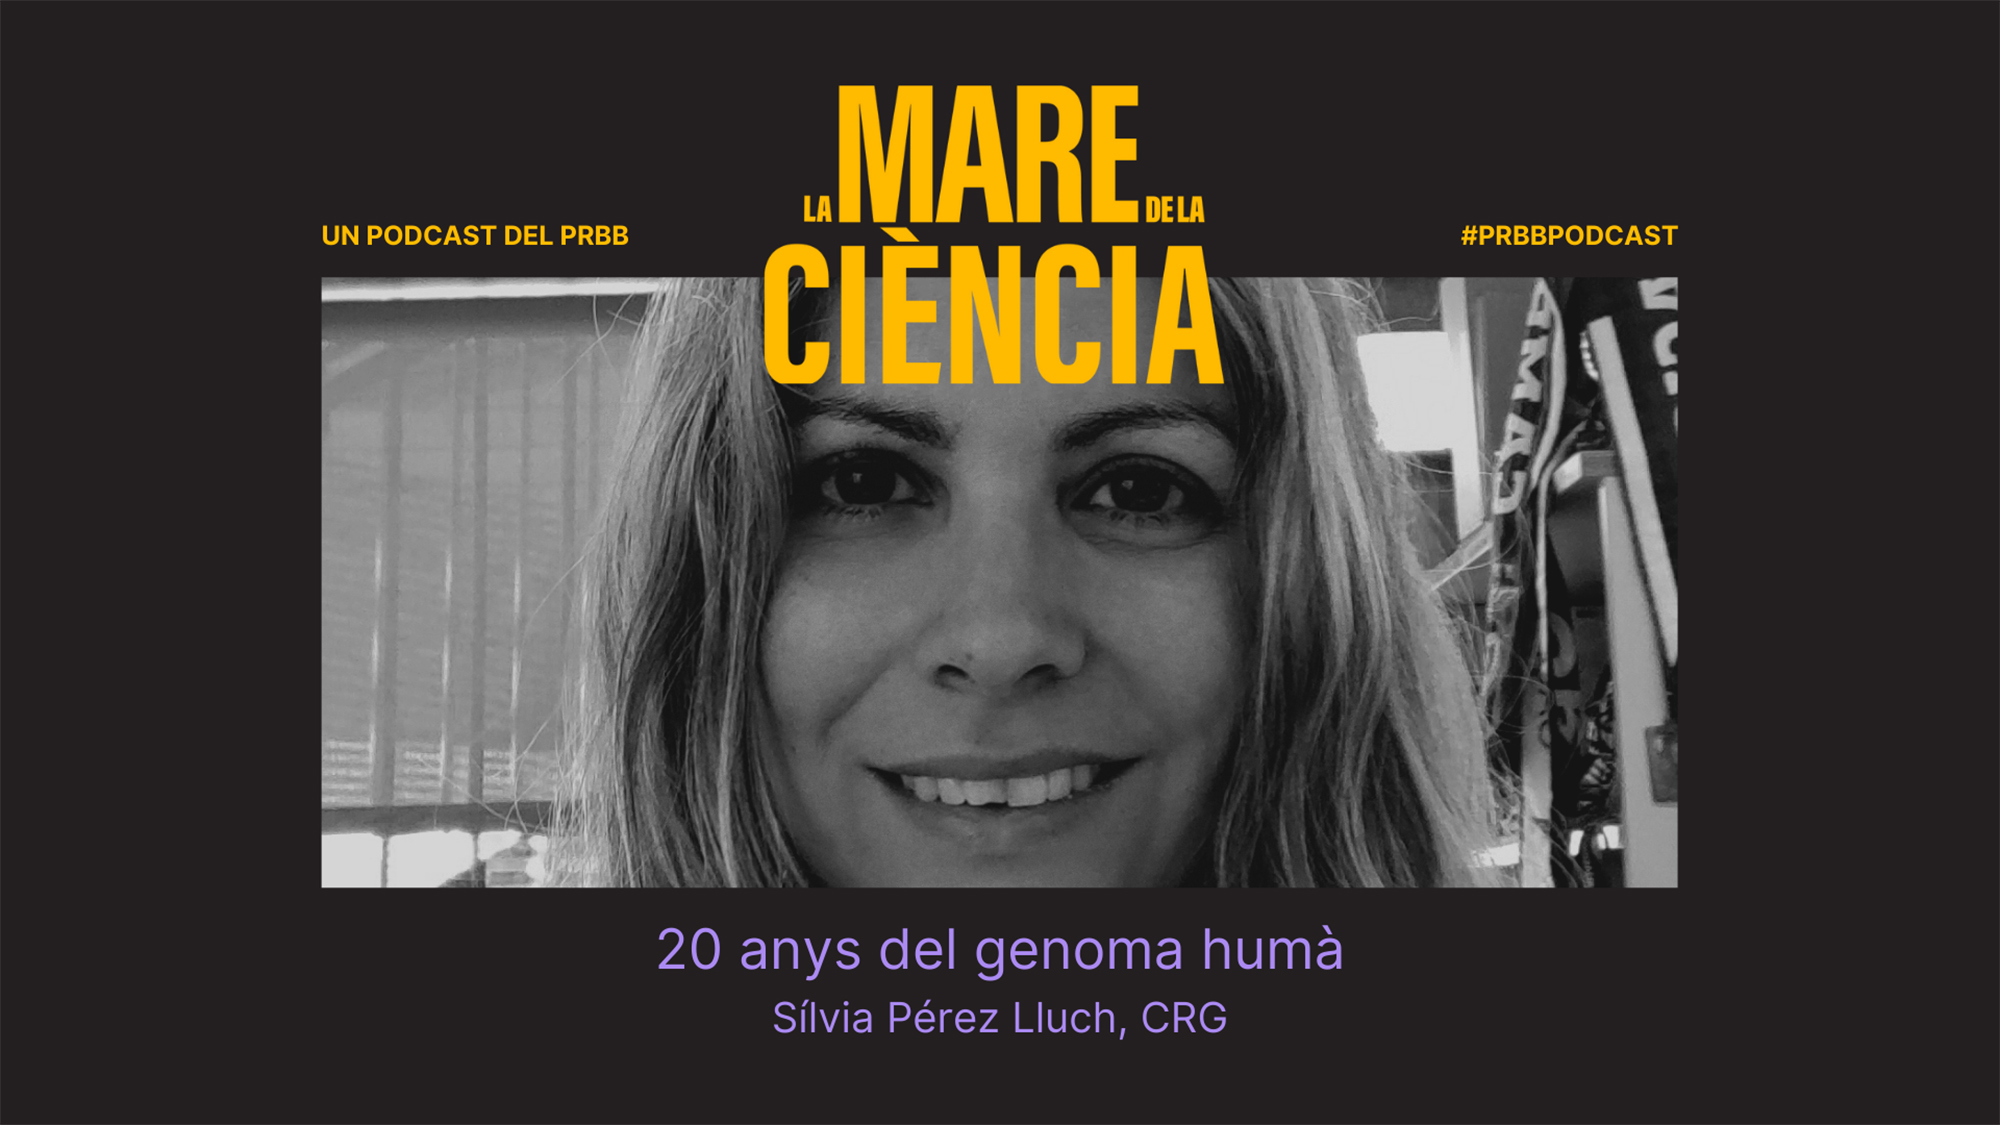 """Sílvia Pérez Lluch (CRG): """"We understand many basic parts of how the genome works, but we still have a lot to learn!"""""""